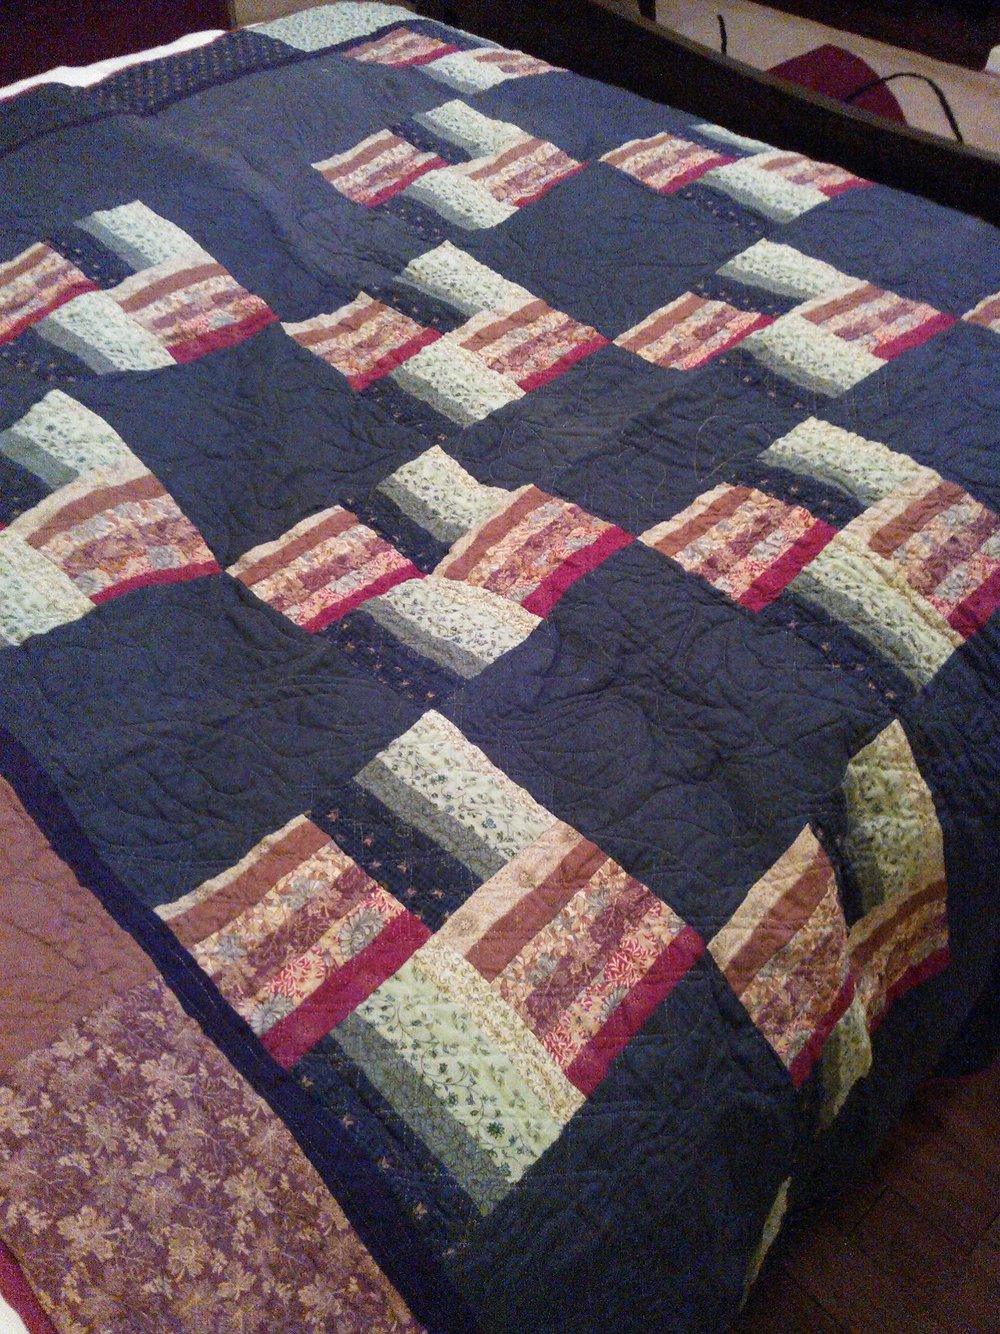 My first completed quilt, a partially hand pieced, all hand quilted log-cabin pattern variation.